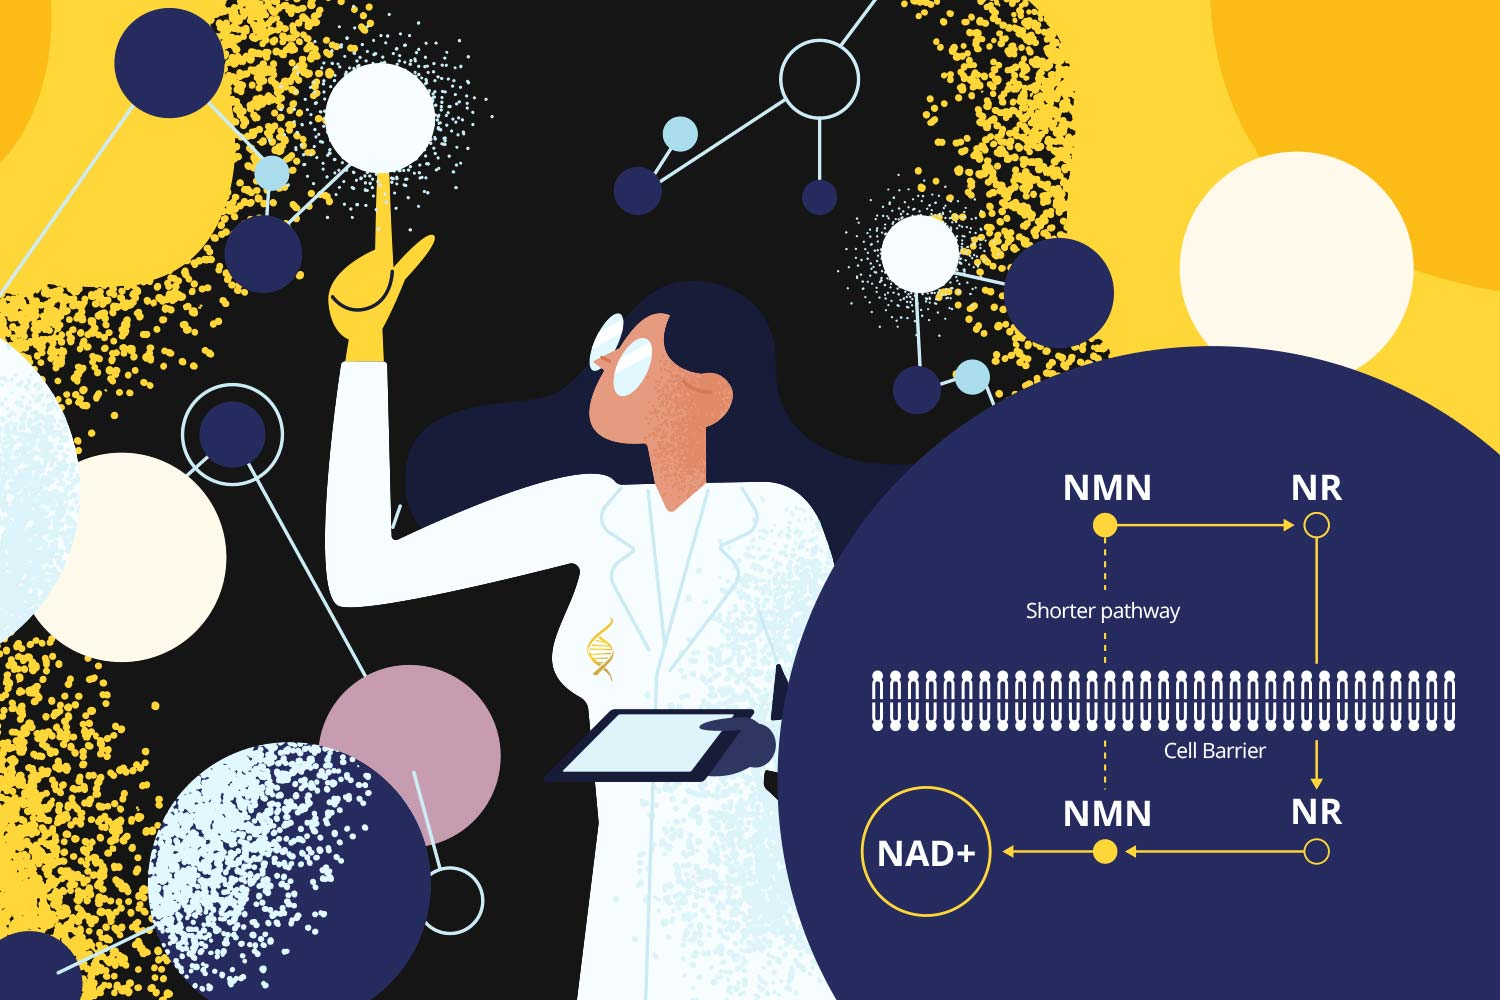 Image of scientist showing the NMN and NR pathway converting to NAD+